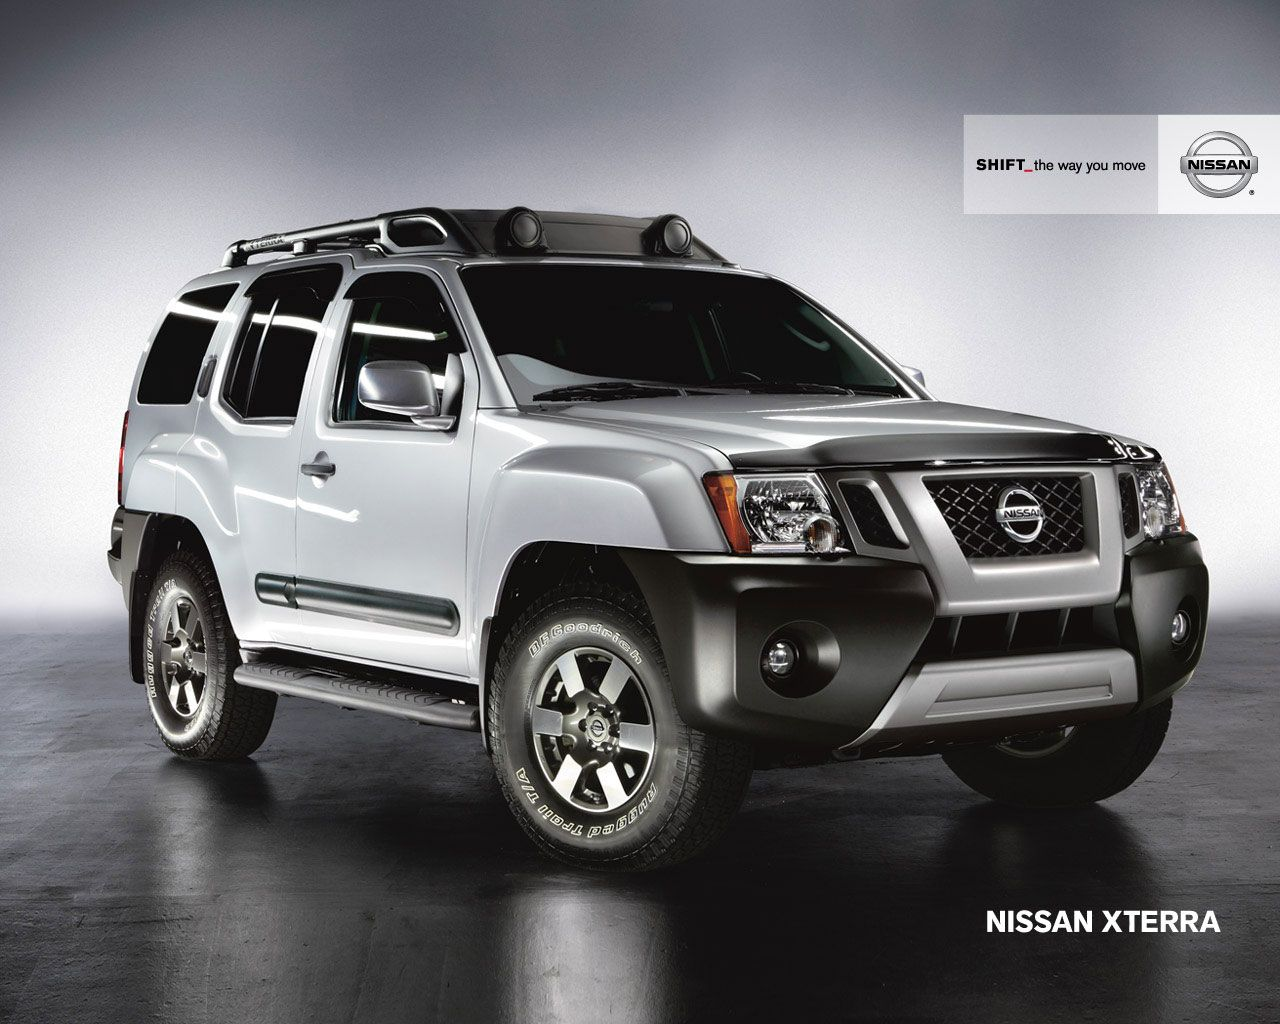 2010 xterra nissan wallpaper 1280 x 1024 pixels 191 kb daily cars list pinterest nissan nissan xterra and dream cars